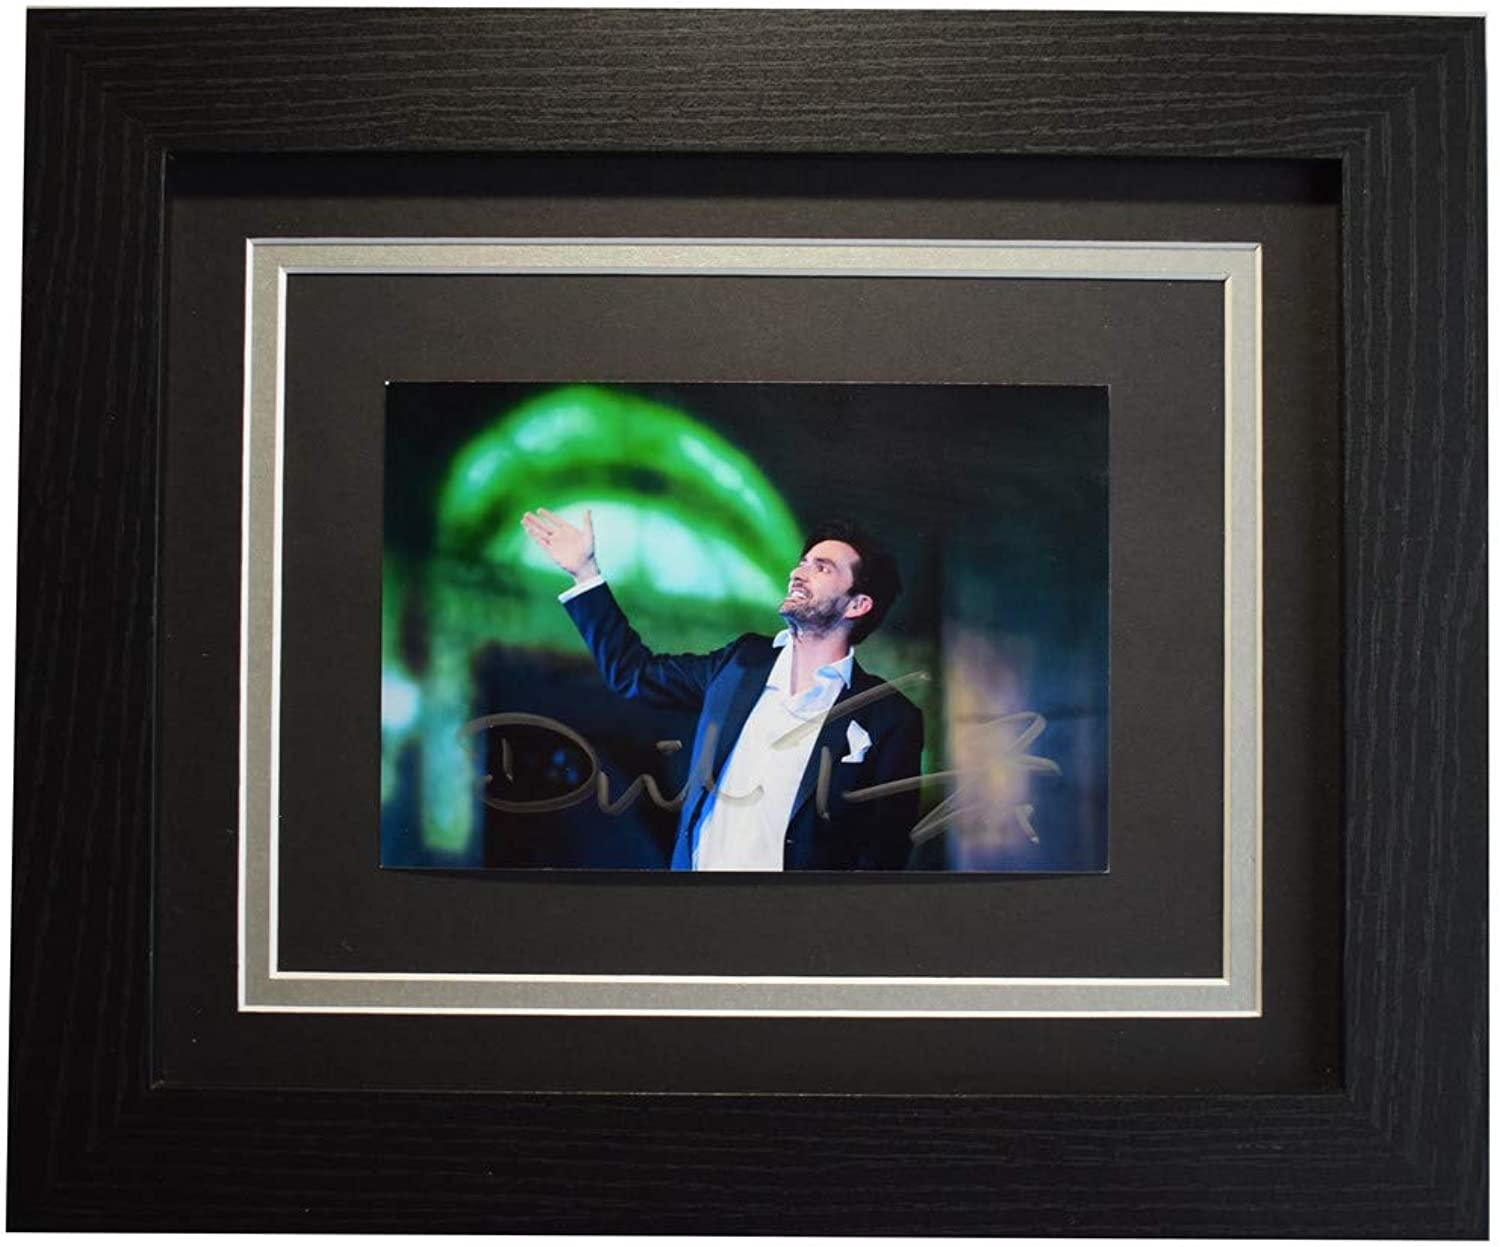 Sportagraphs David Tennant Signed 10x8 Framed Photo Autograph Display Don Juan Dr who COA